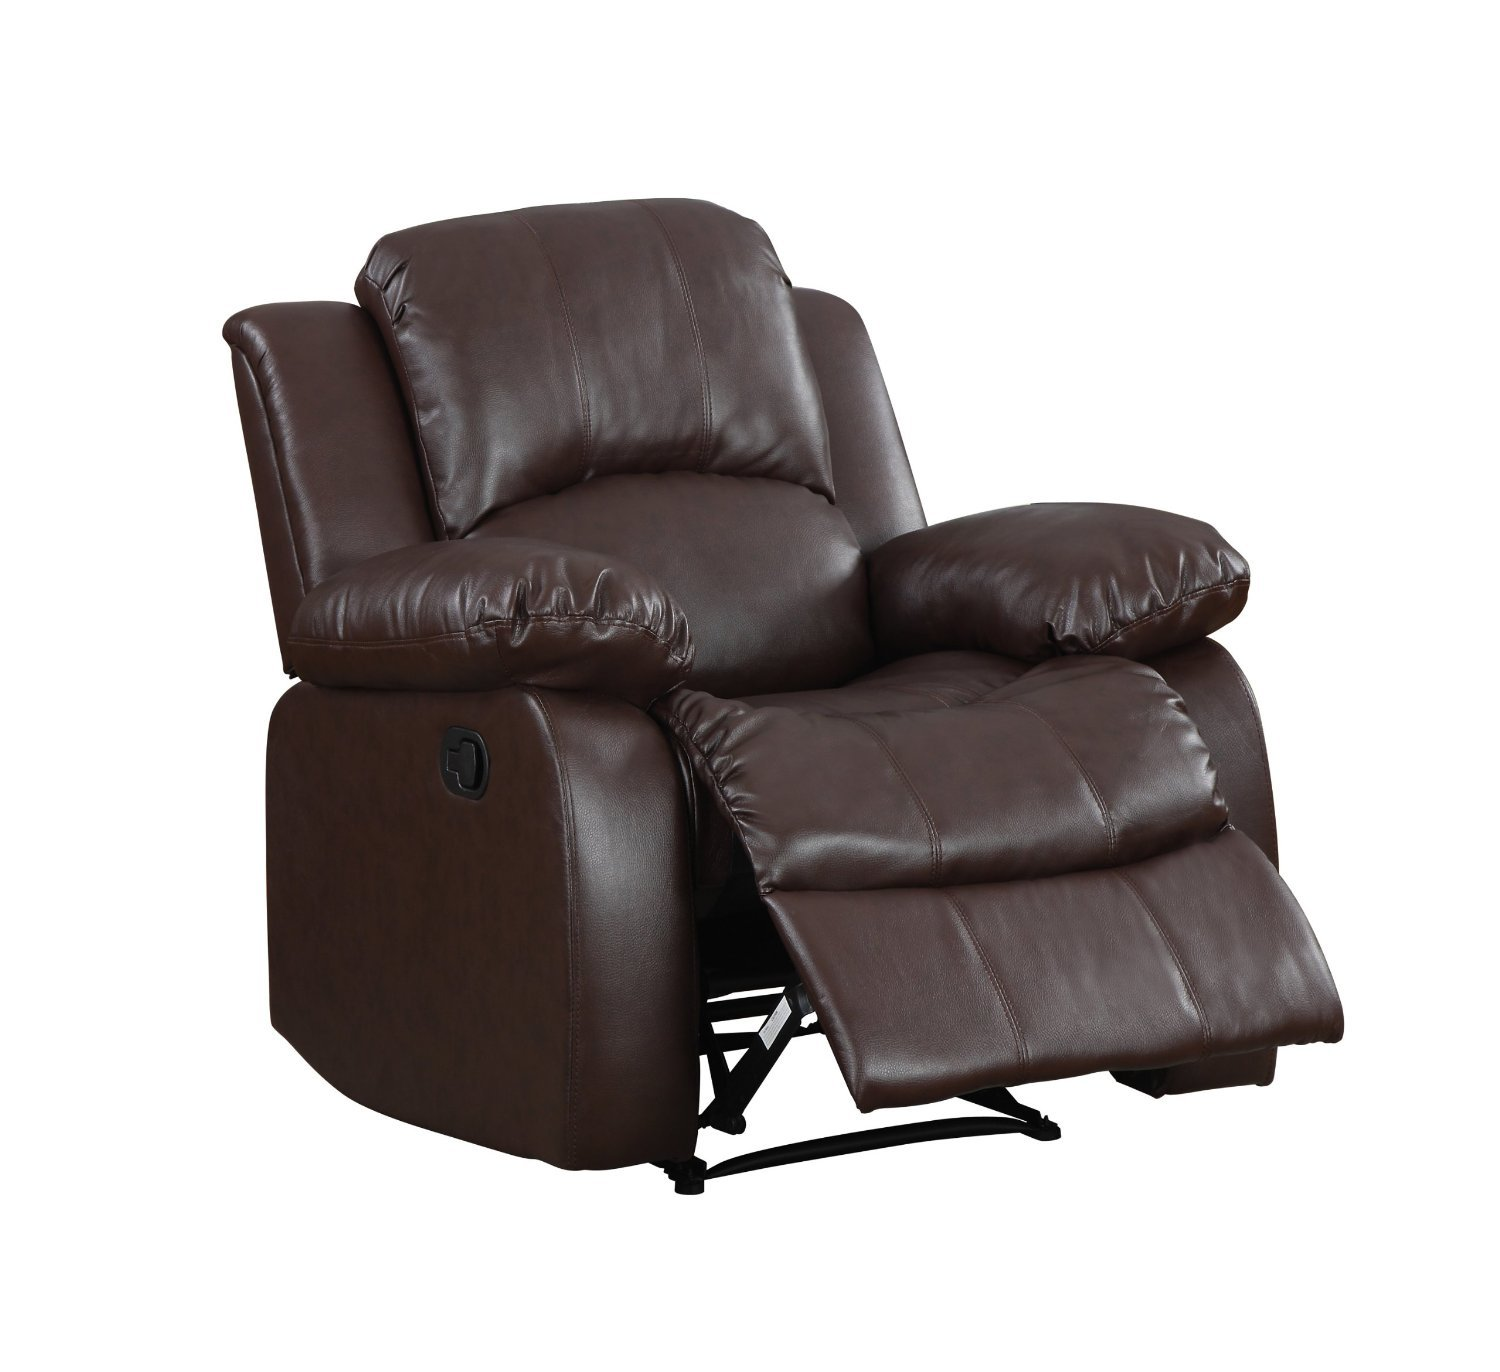 Amazon.com: Divano Roma Furniture Classic Bonded Leather Recliner Chair,  Brown: Kitchen U0026 Dining Part 24